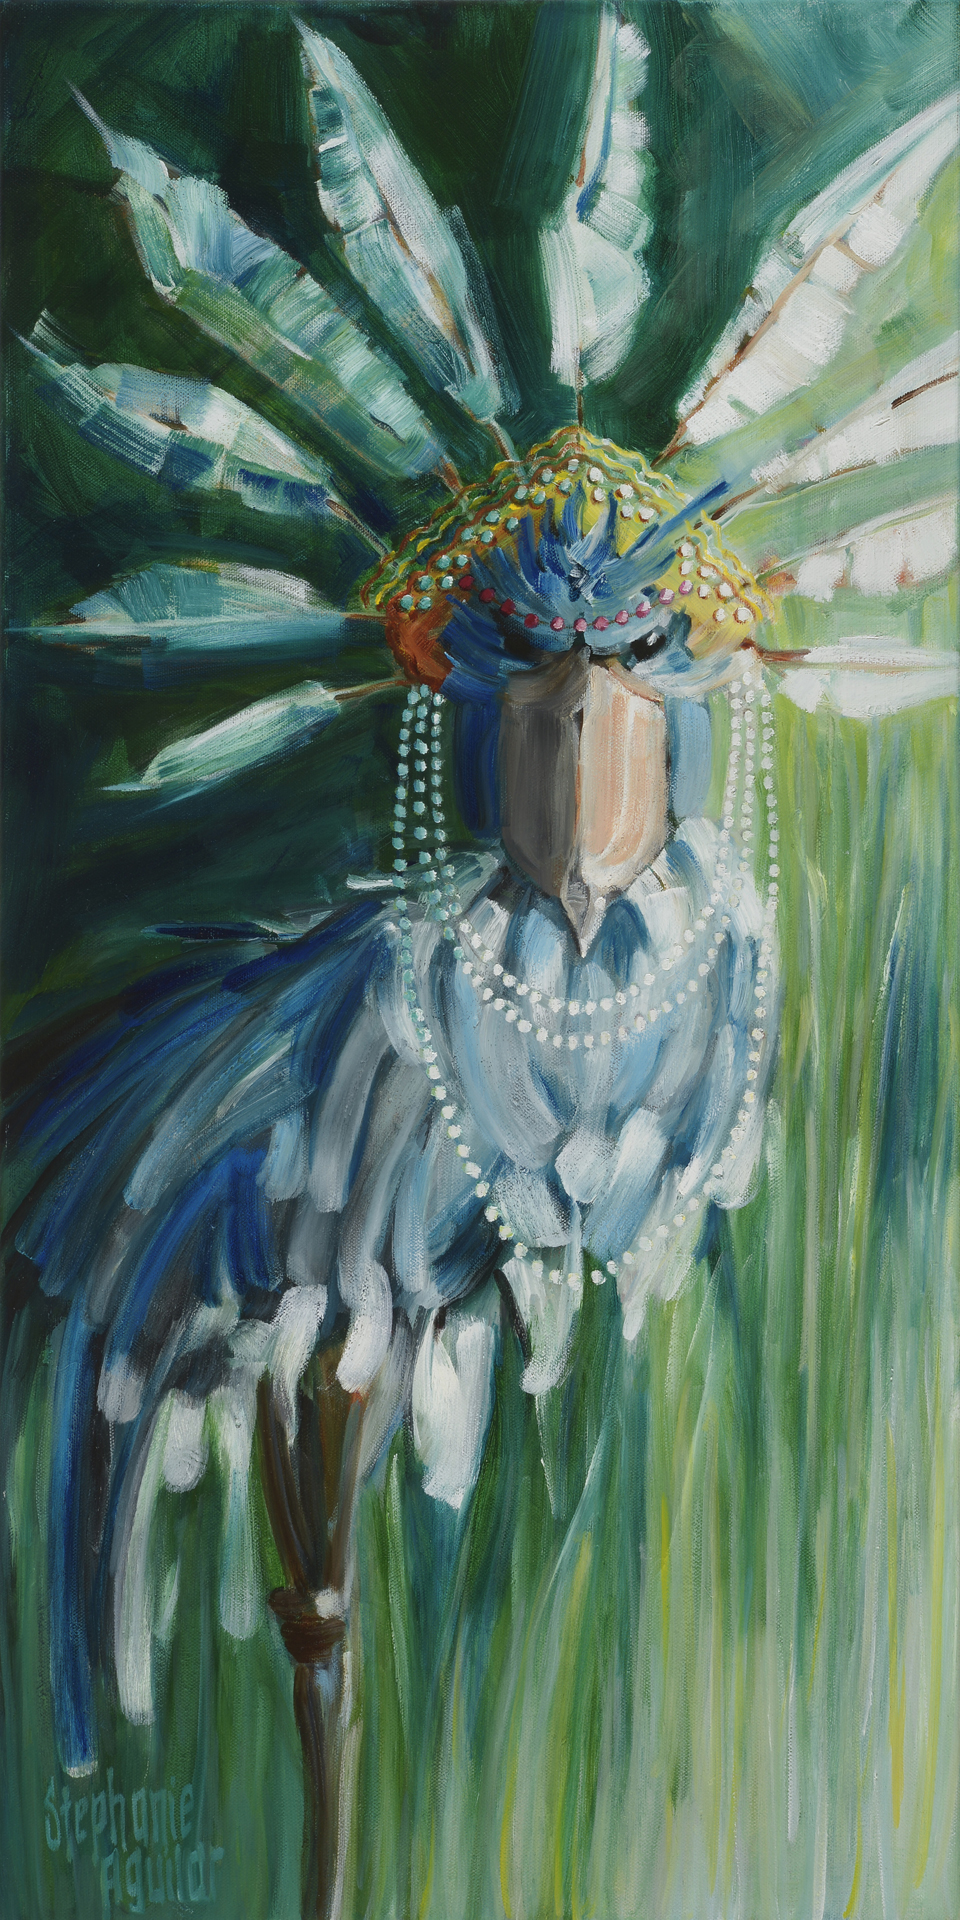 Stork with Feathered Crown, 2017